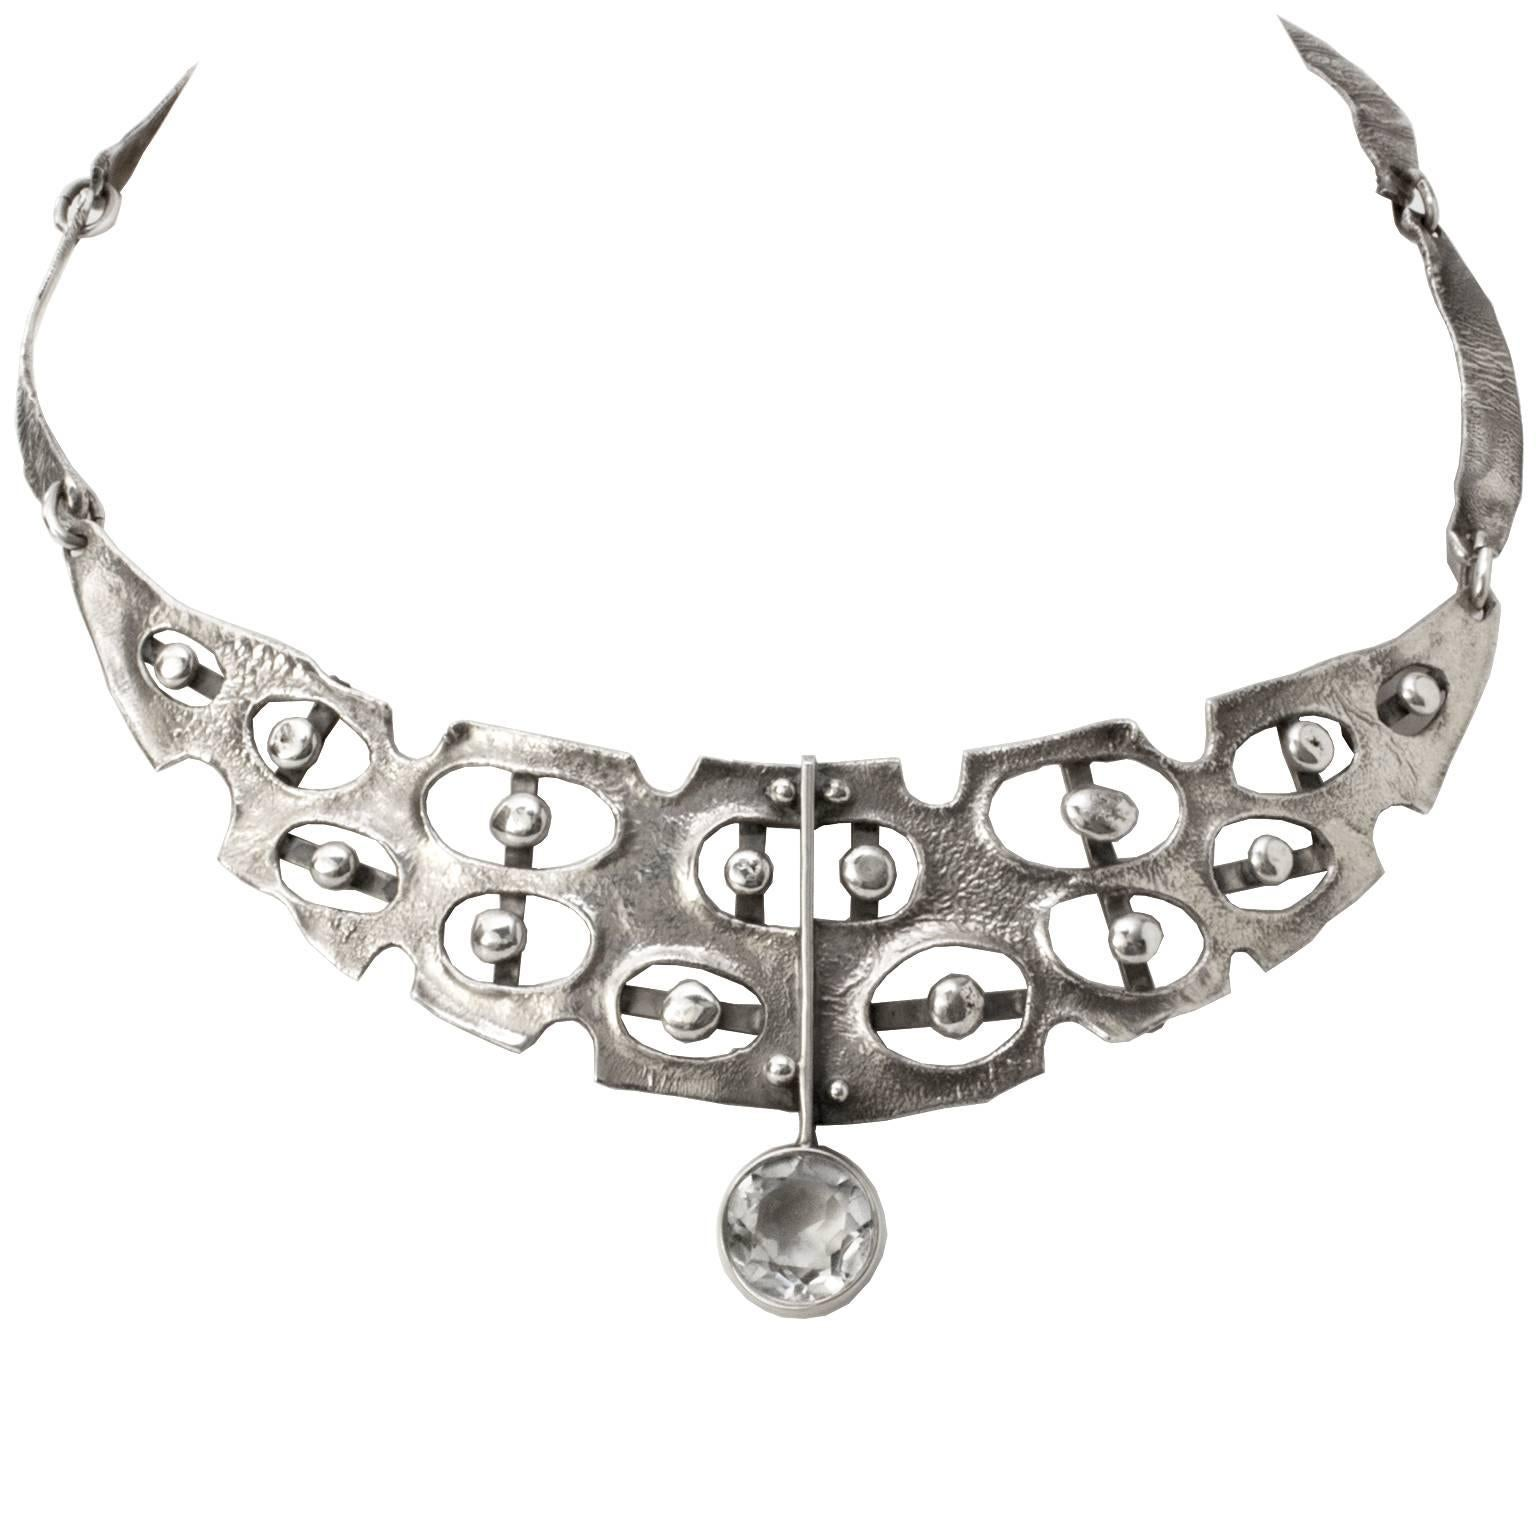 Scandinavian Modern Sterling Silver Necklace with Rock Crystal, Issac Cohen